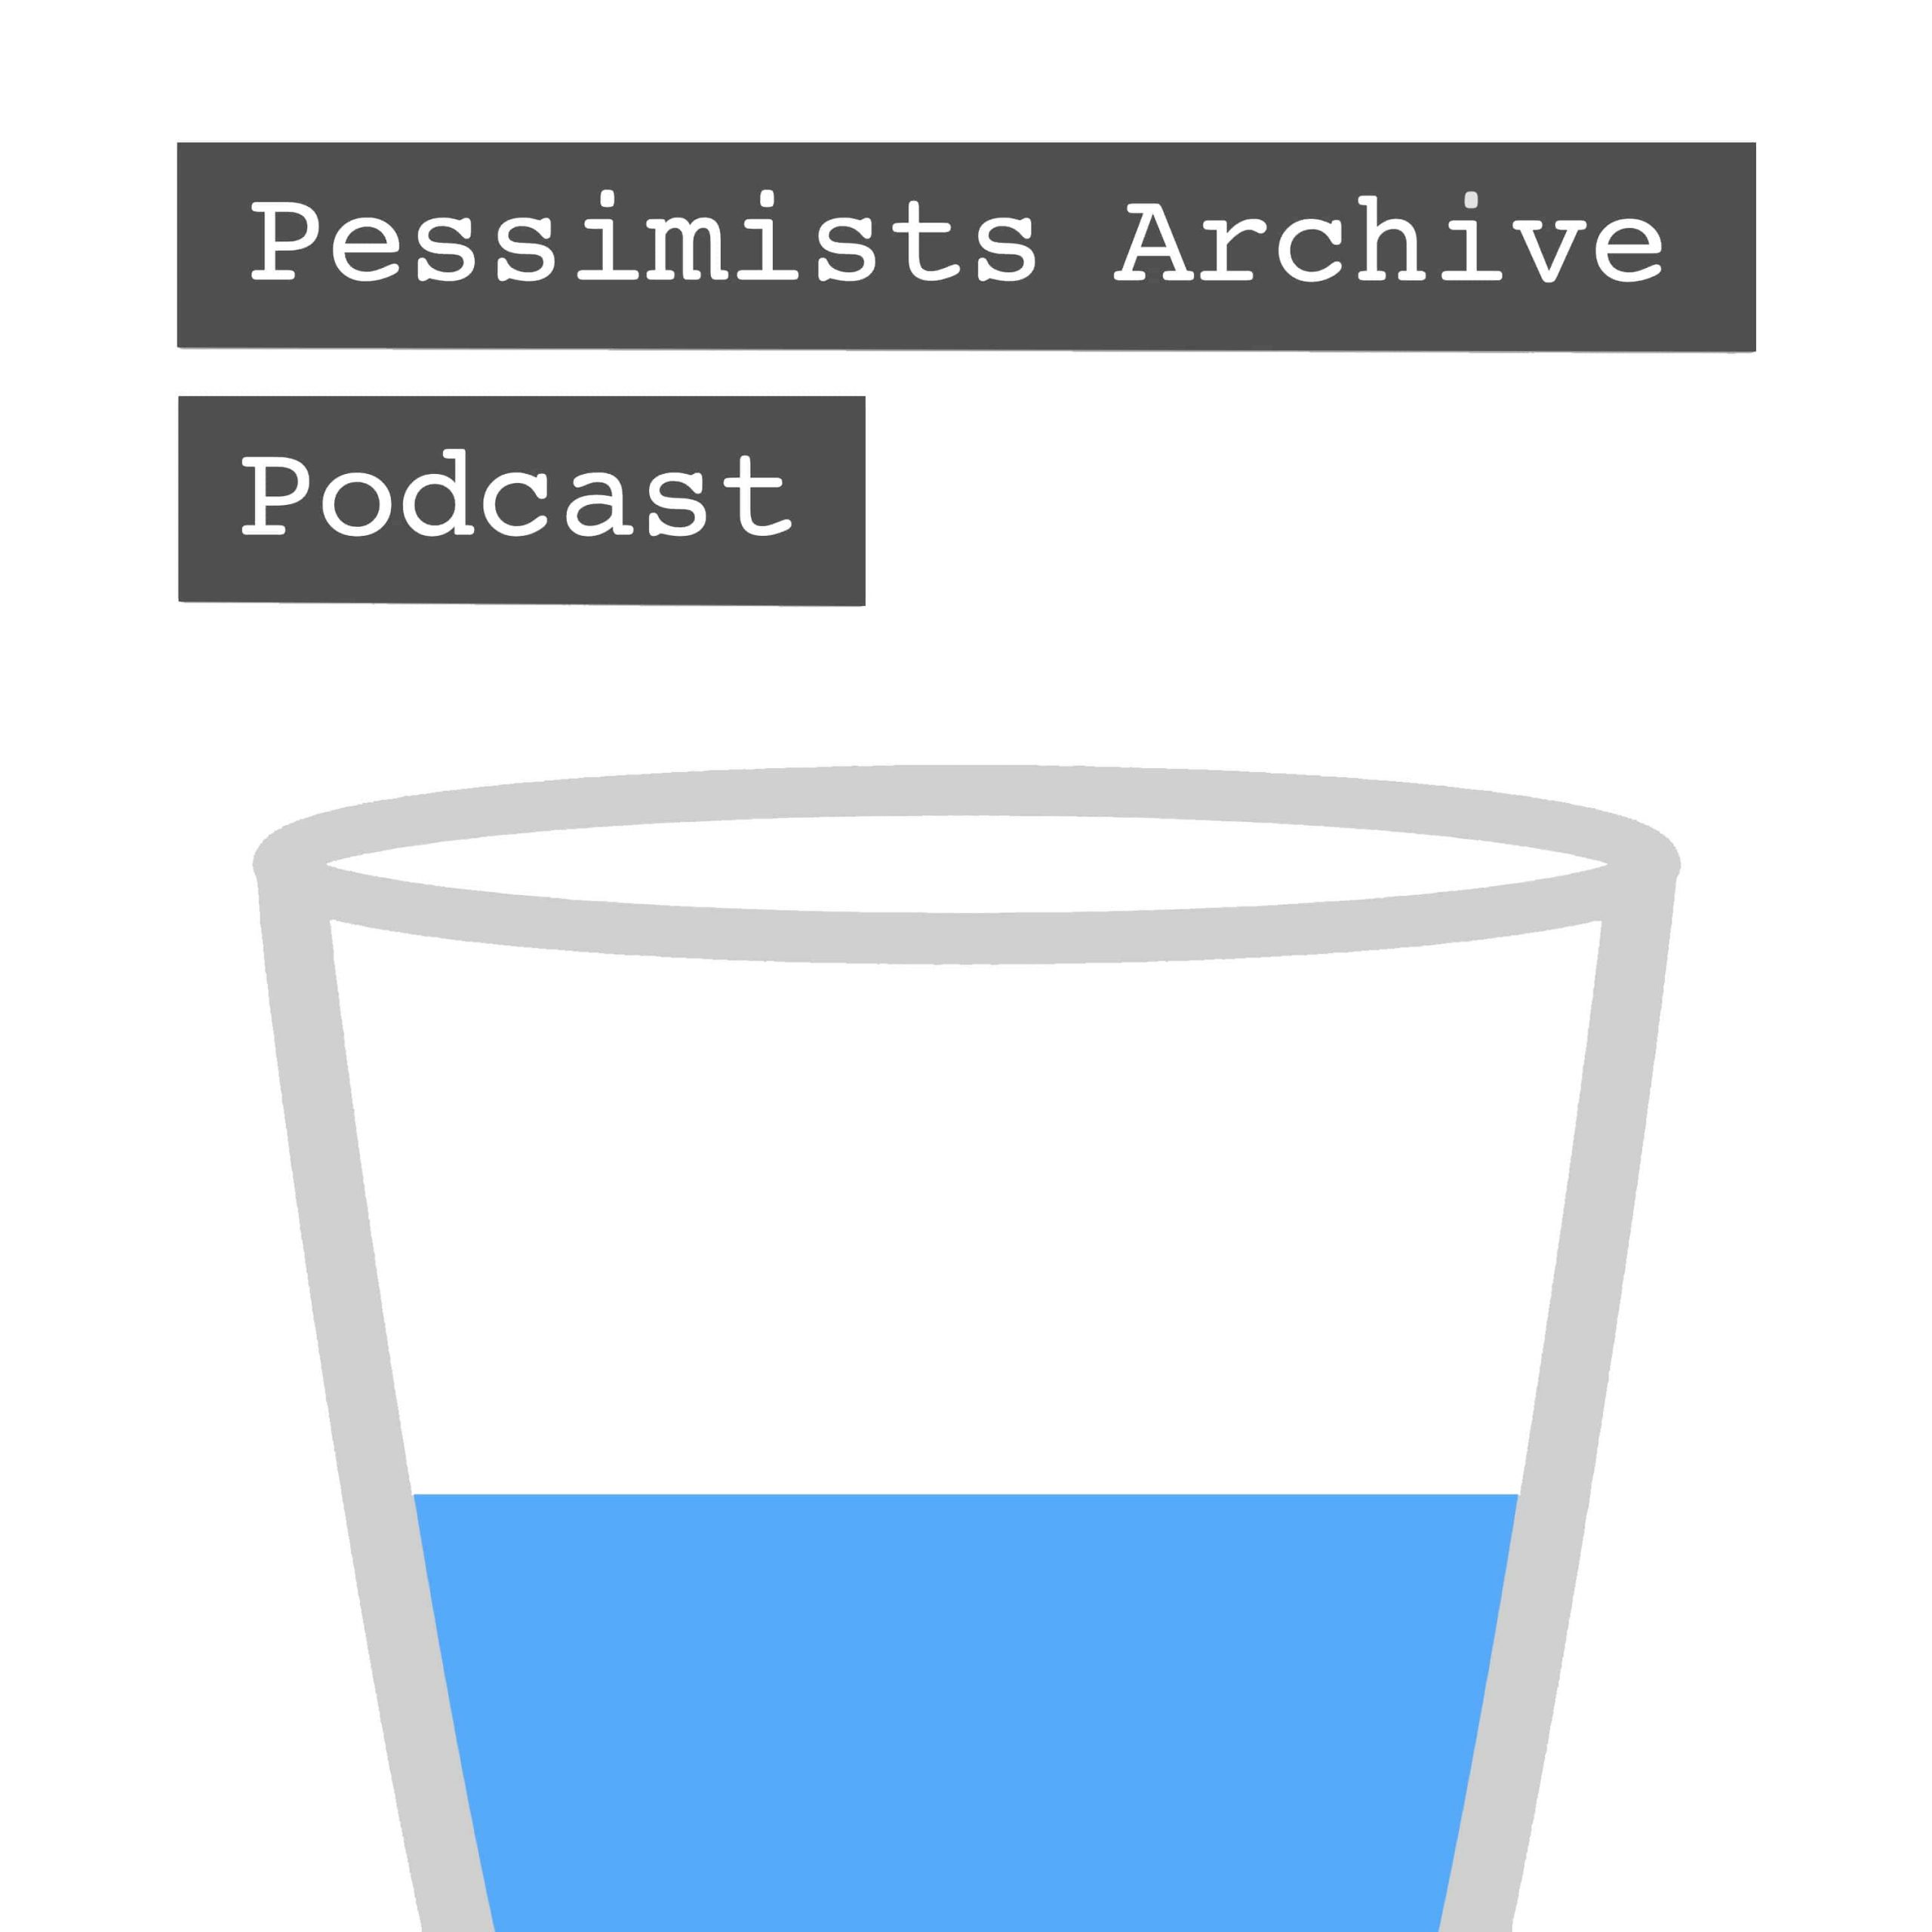 Podcast – Pessimists Archive